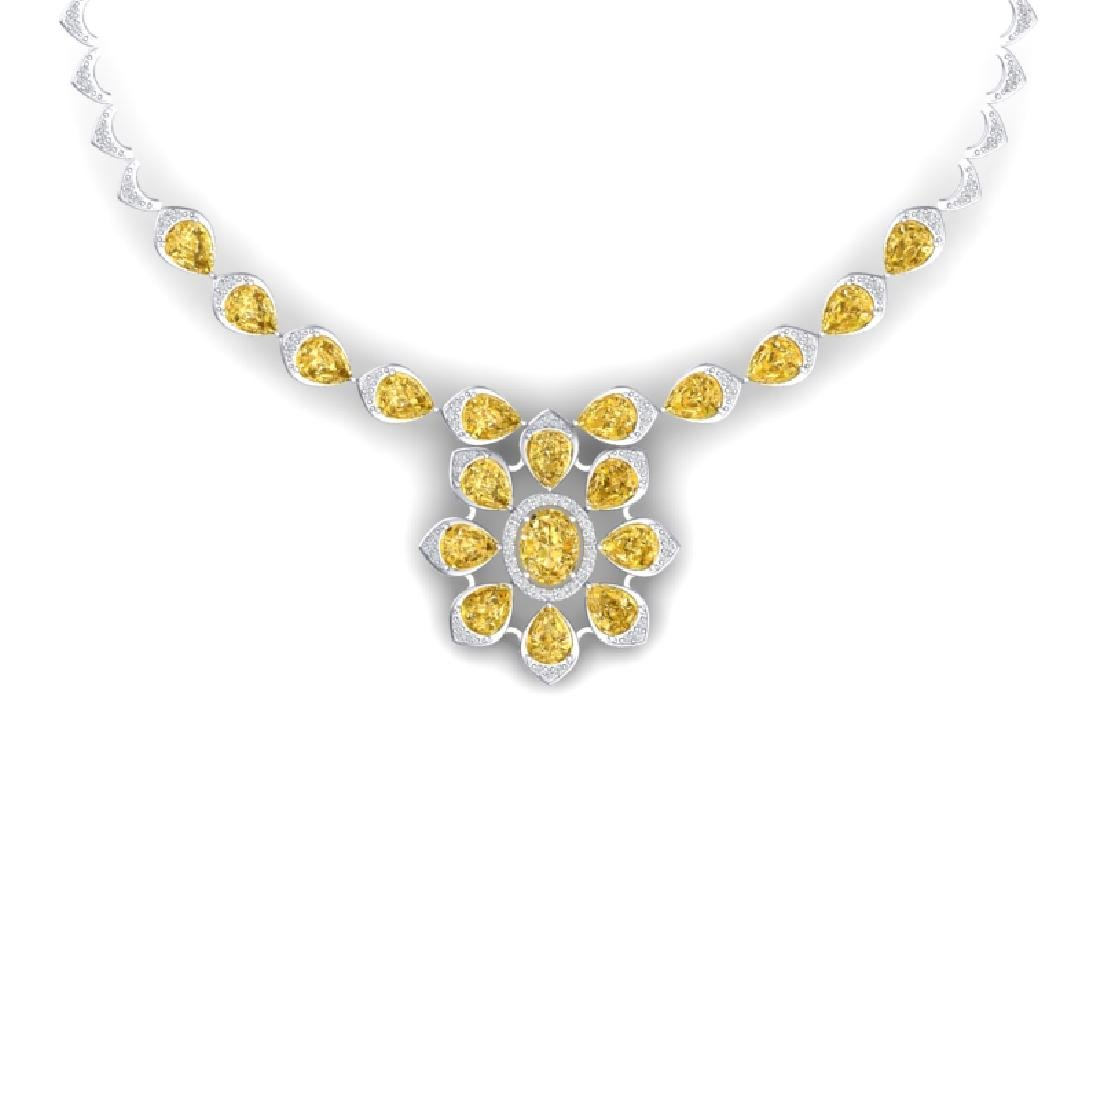 28.51 CTW Royalty Canary Citrine & VS Diamond Necklace